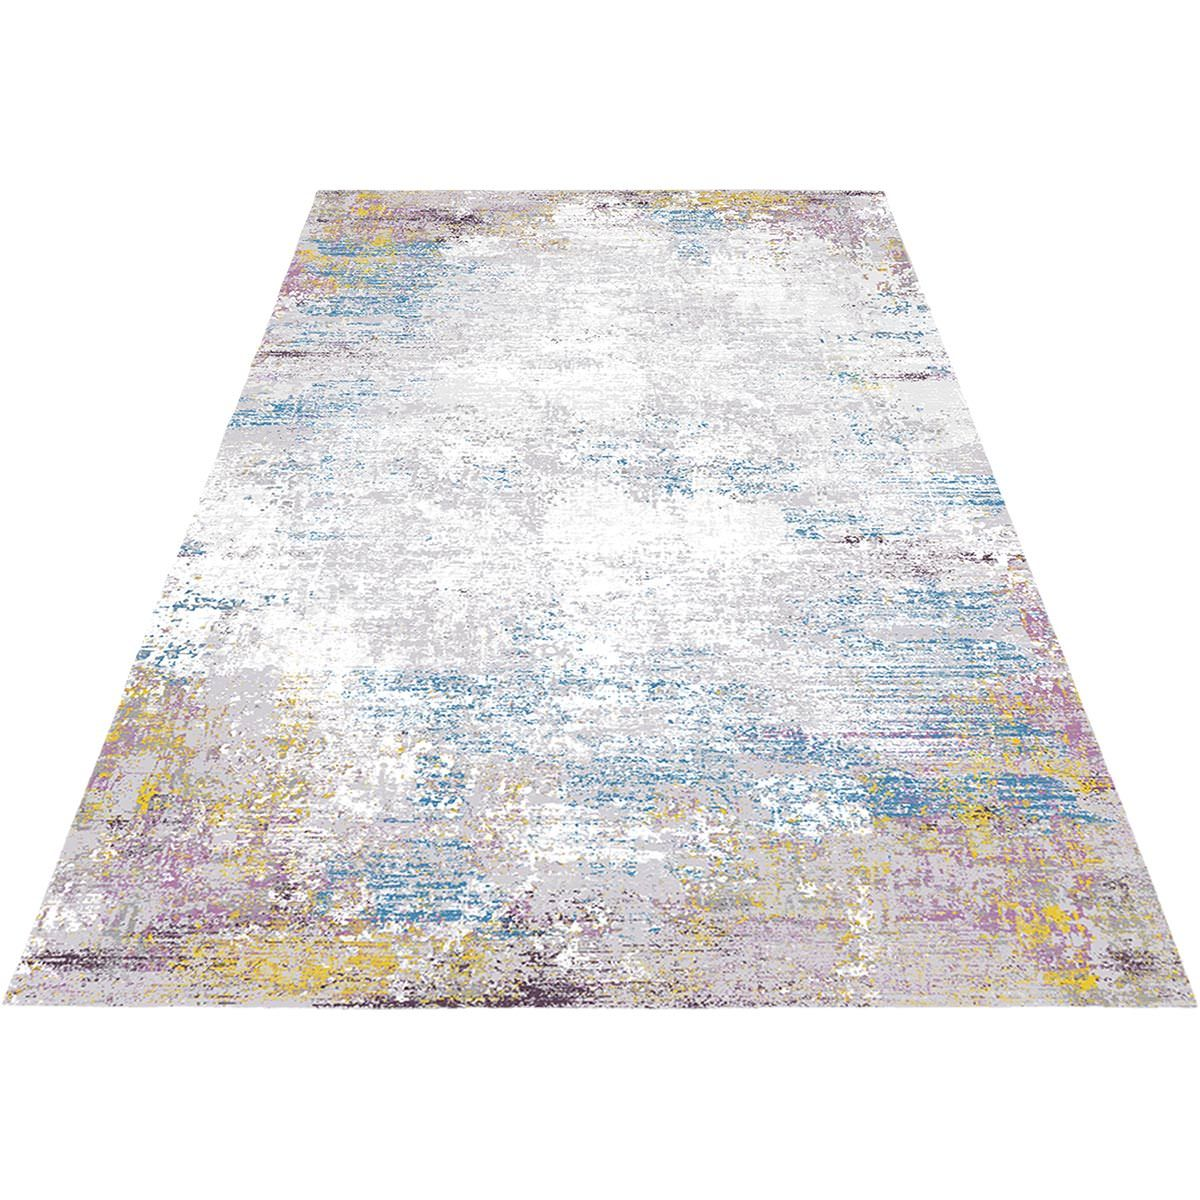 Jaipur Rug 03 Purple/Light Blue/Yellow 2